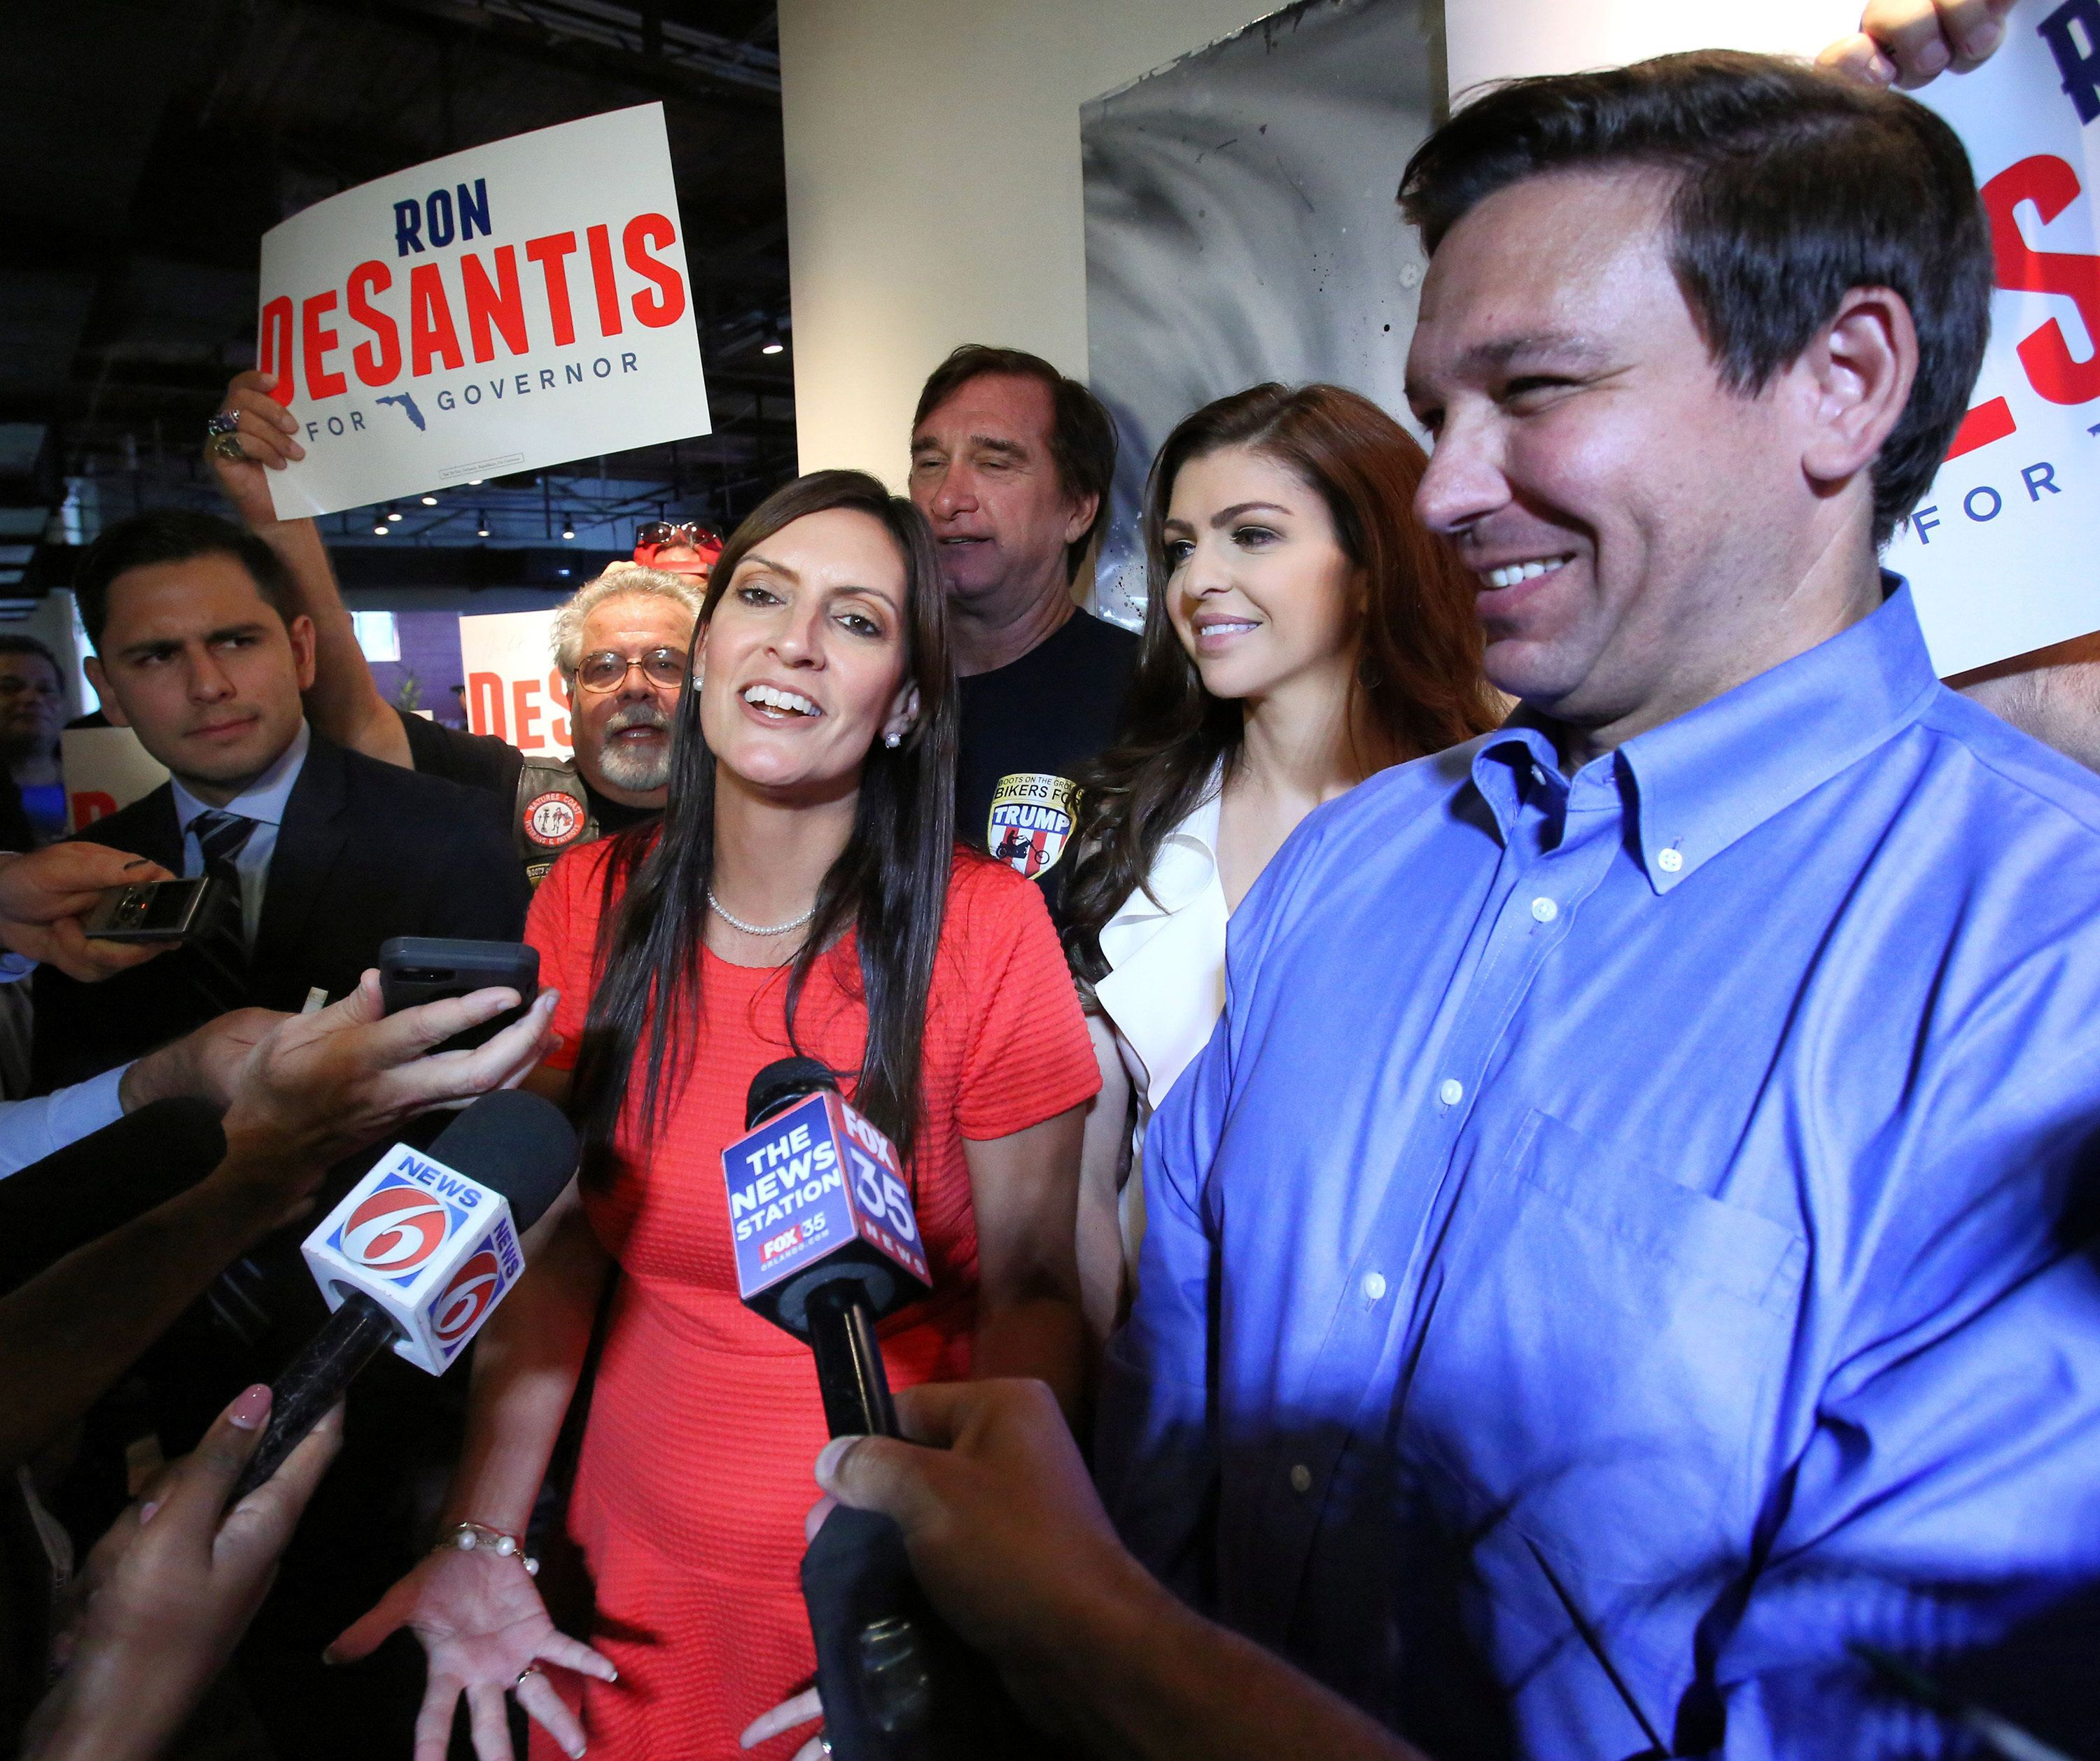 Republican nominee for the Florida governor, Ron DeSantis, introduces his running mate, Jeanette Nunez, after the rally where Republican nominees for the 2018 election gathered at the Ace Cafe in downtown Orlando, Thursday, Sept. 6, 2018. (Joe Burbank/Orlando Sentinel/TNS/Sipa USA)